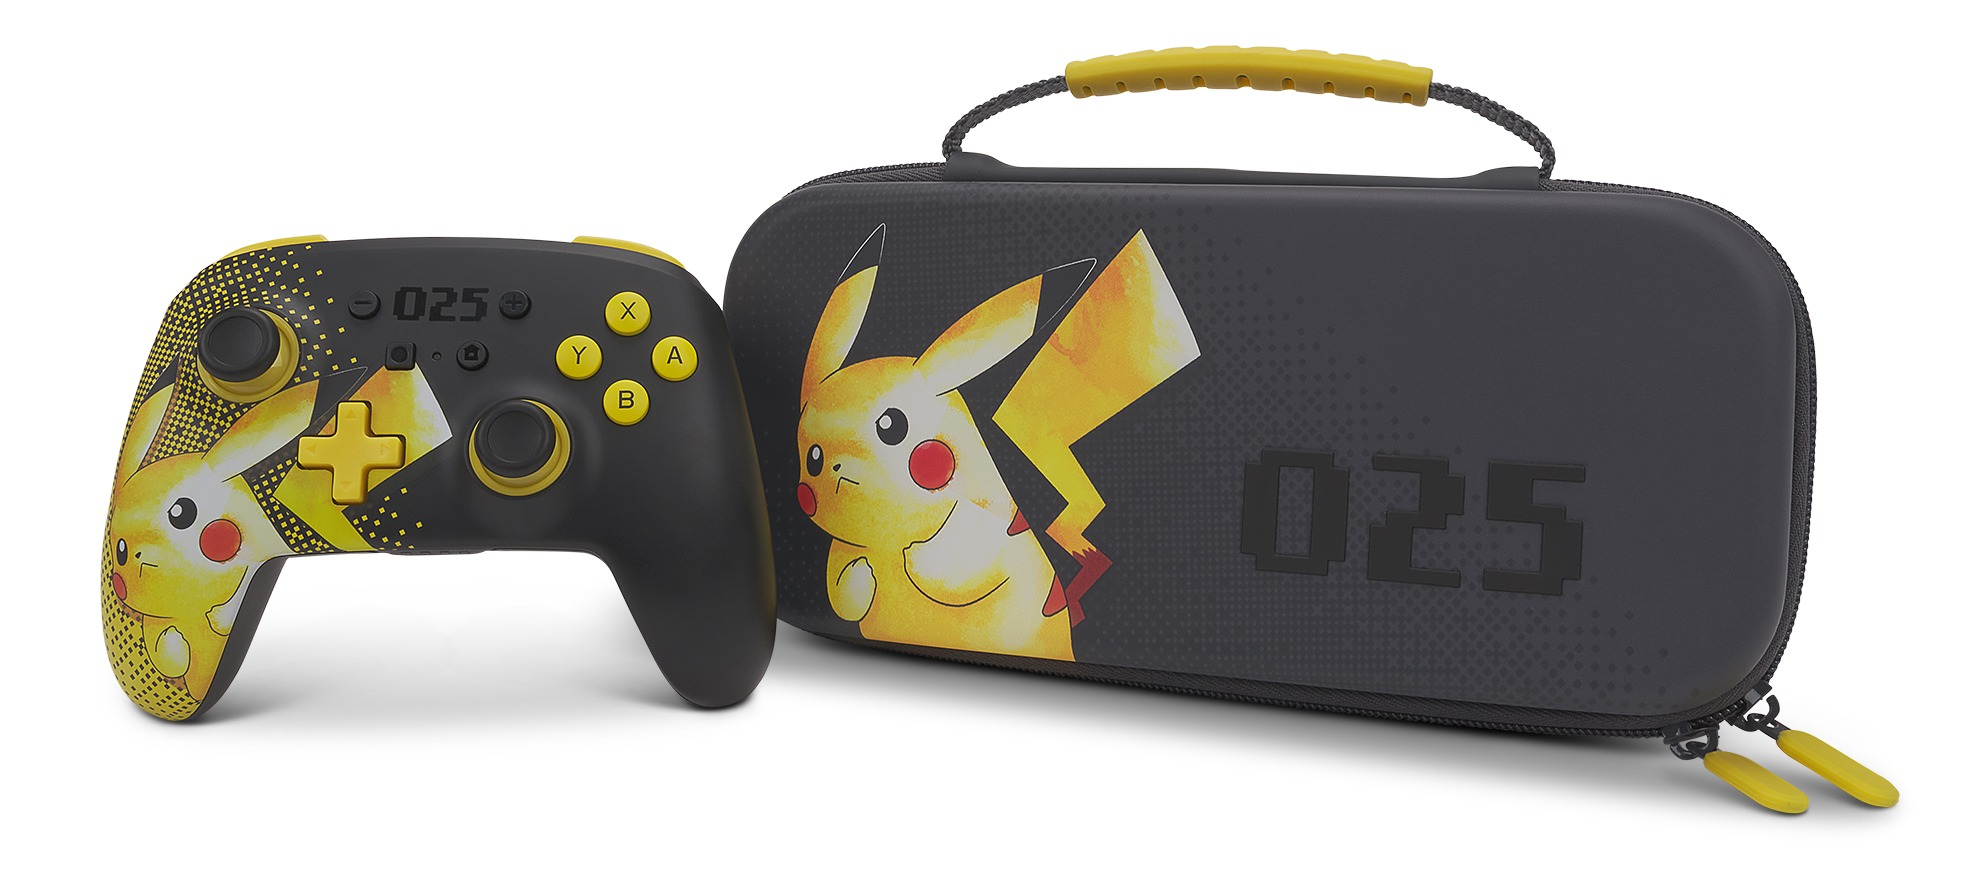 Enhanced Wireless Controller and Protection Case for the Nintendo Switch - Pikachu 025 by PowerA